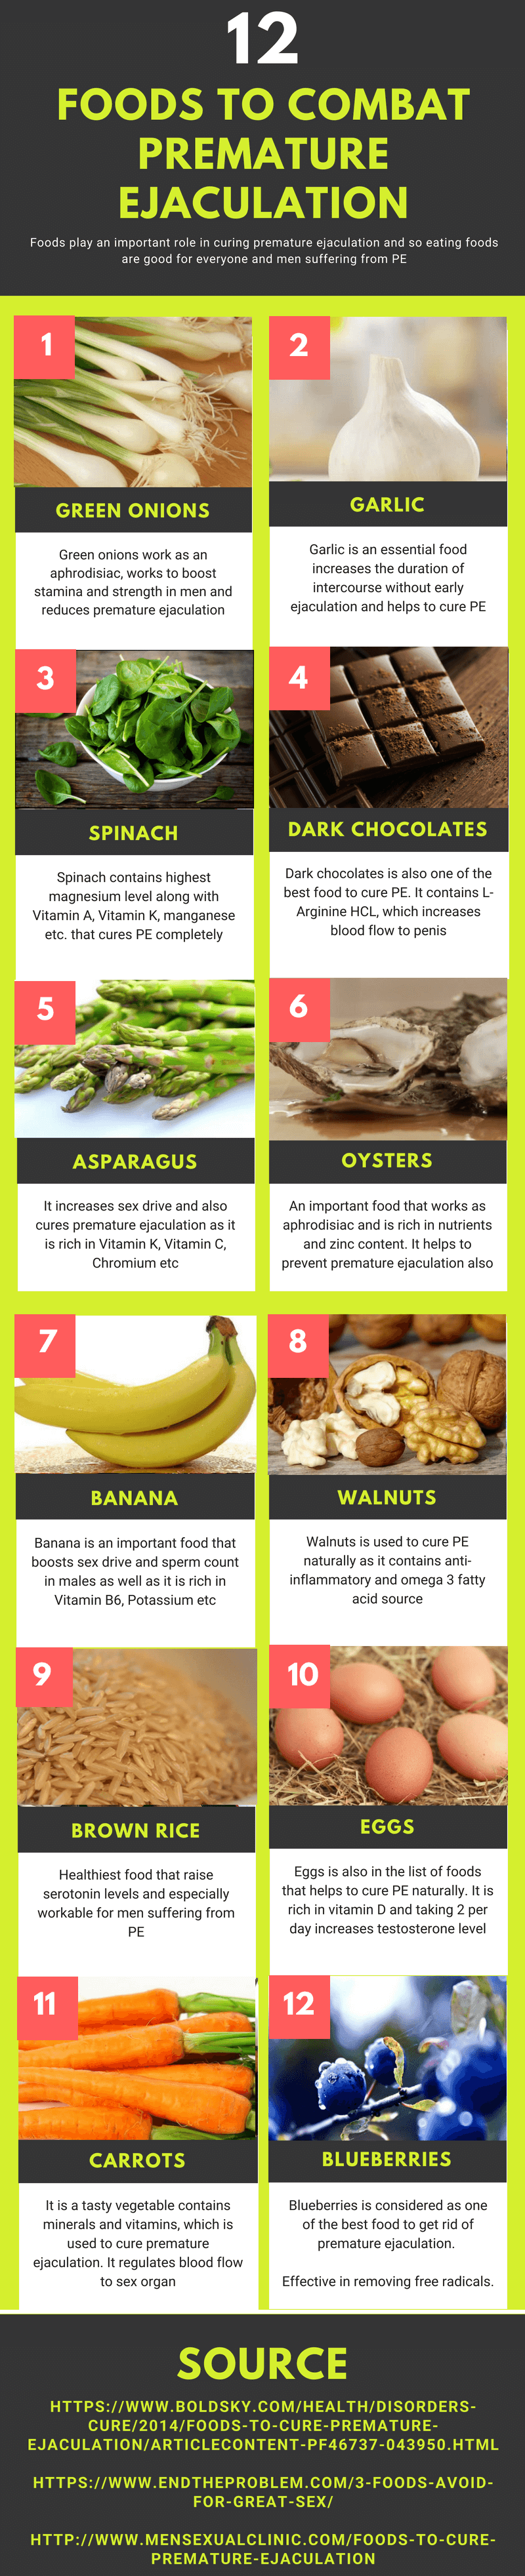 Top 12 Foods to Overcome Premature Ejaculation Naturally